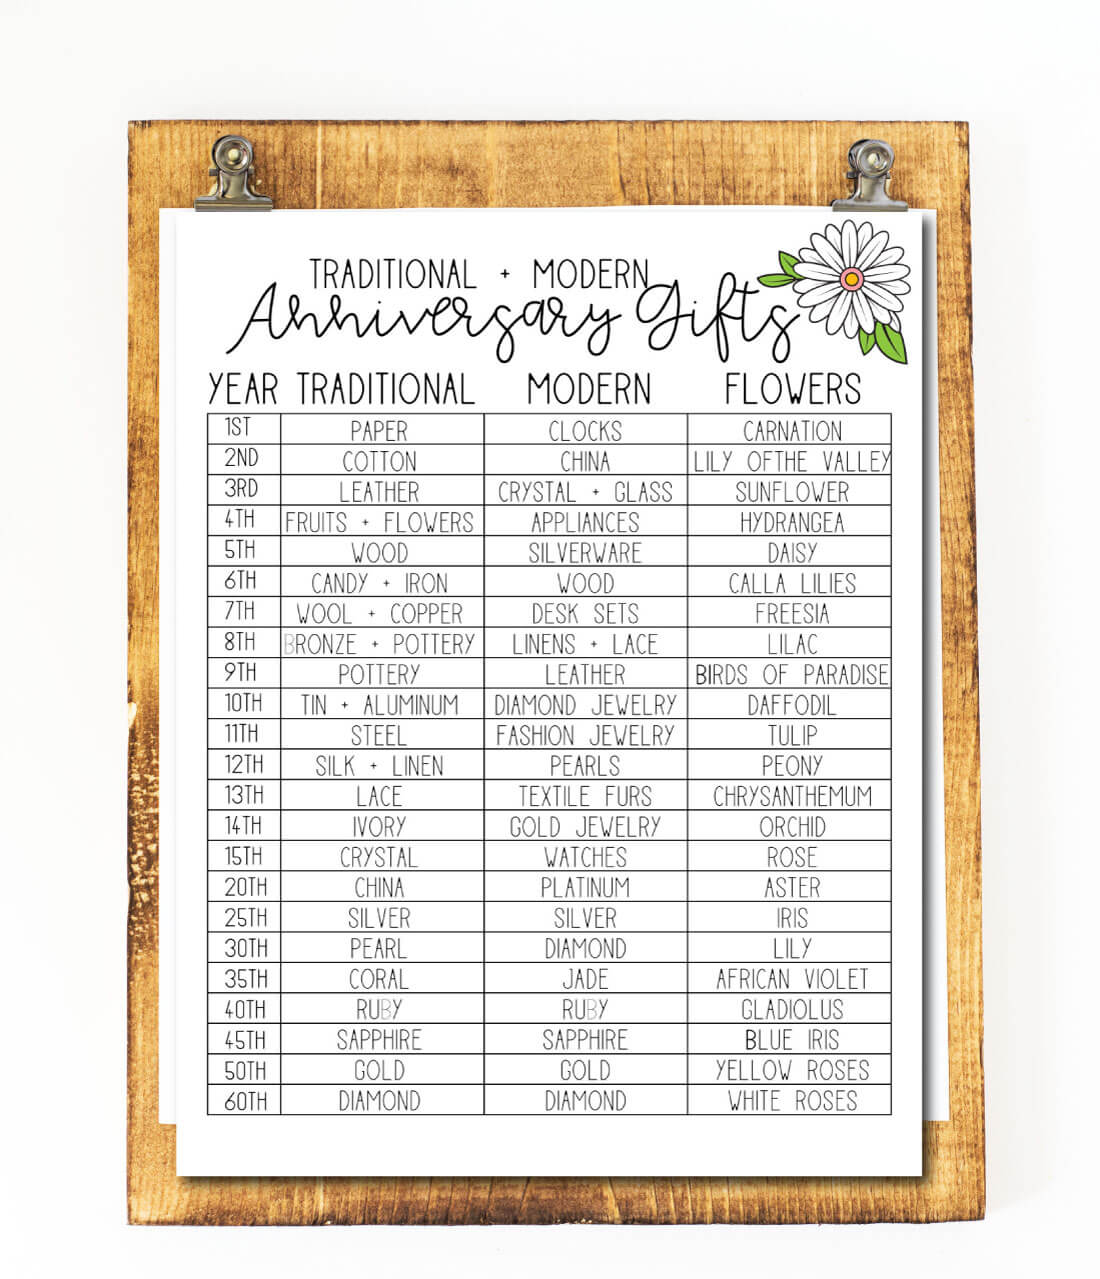 Anniversary Gifts By Year - free printable from www.thirtyhandmadedays.com